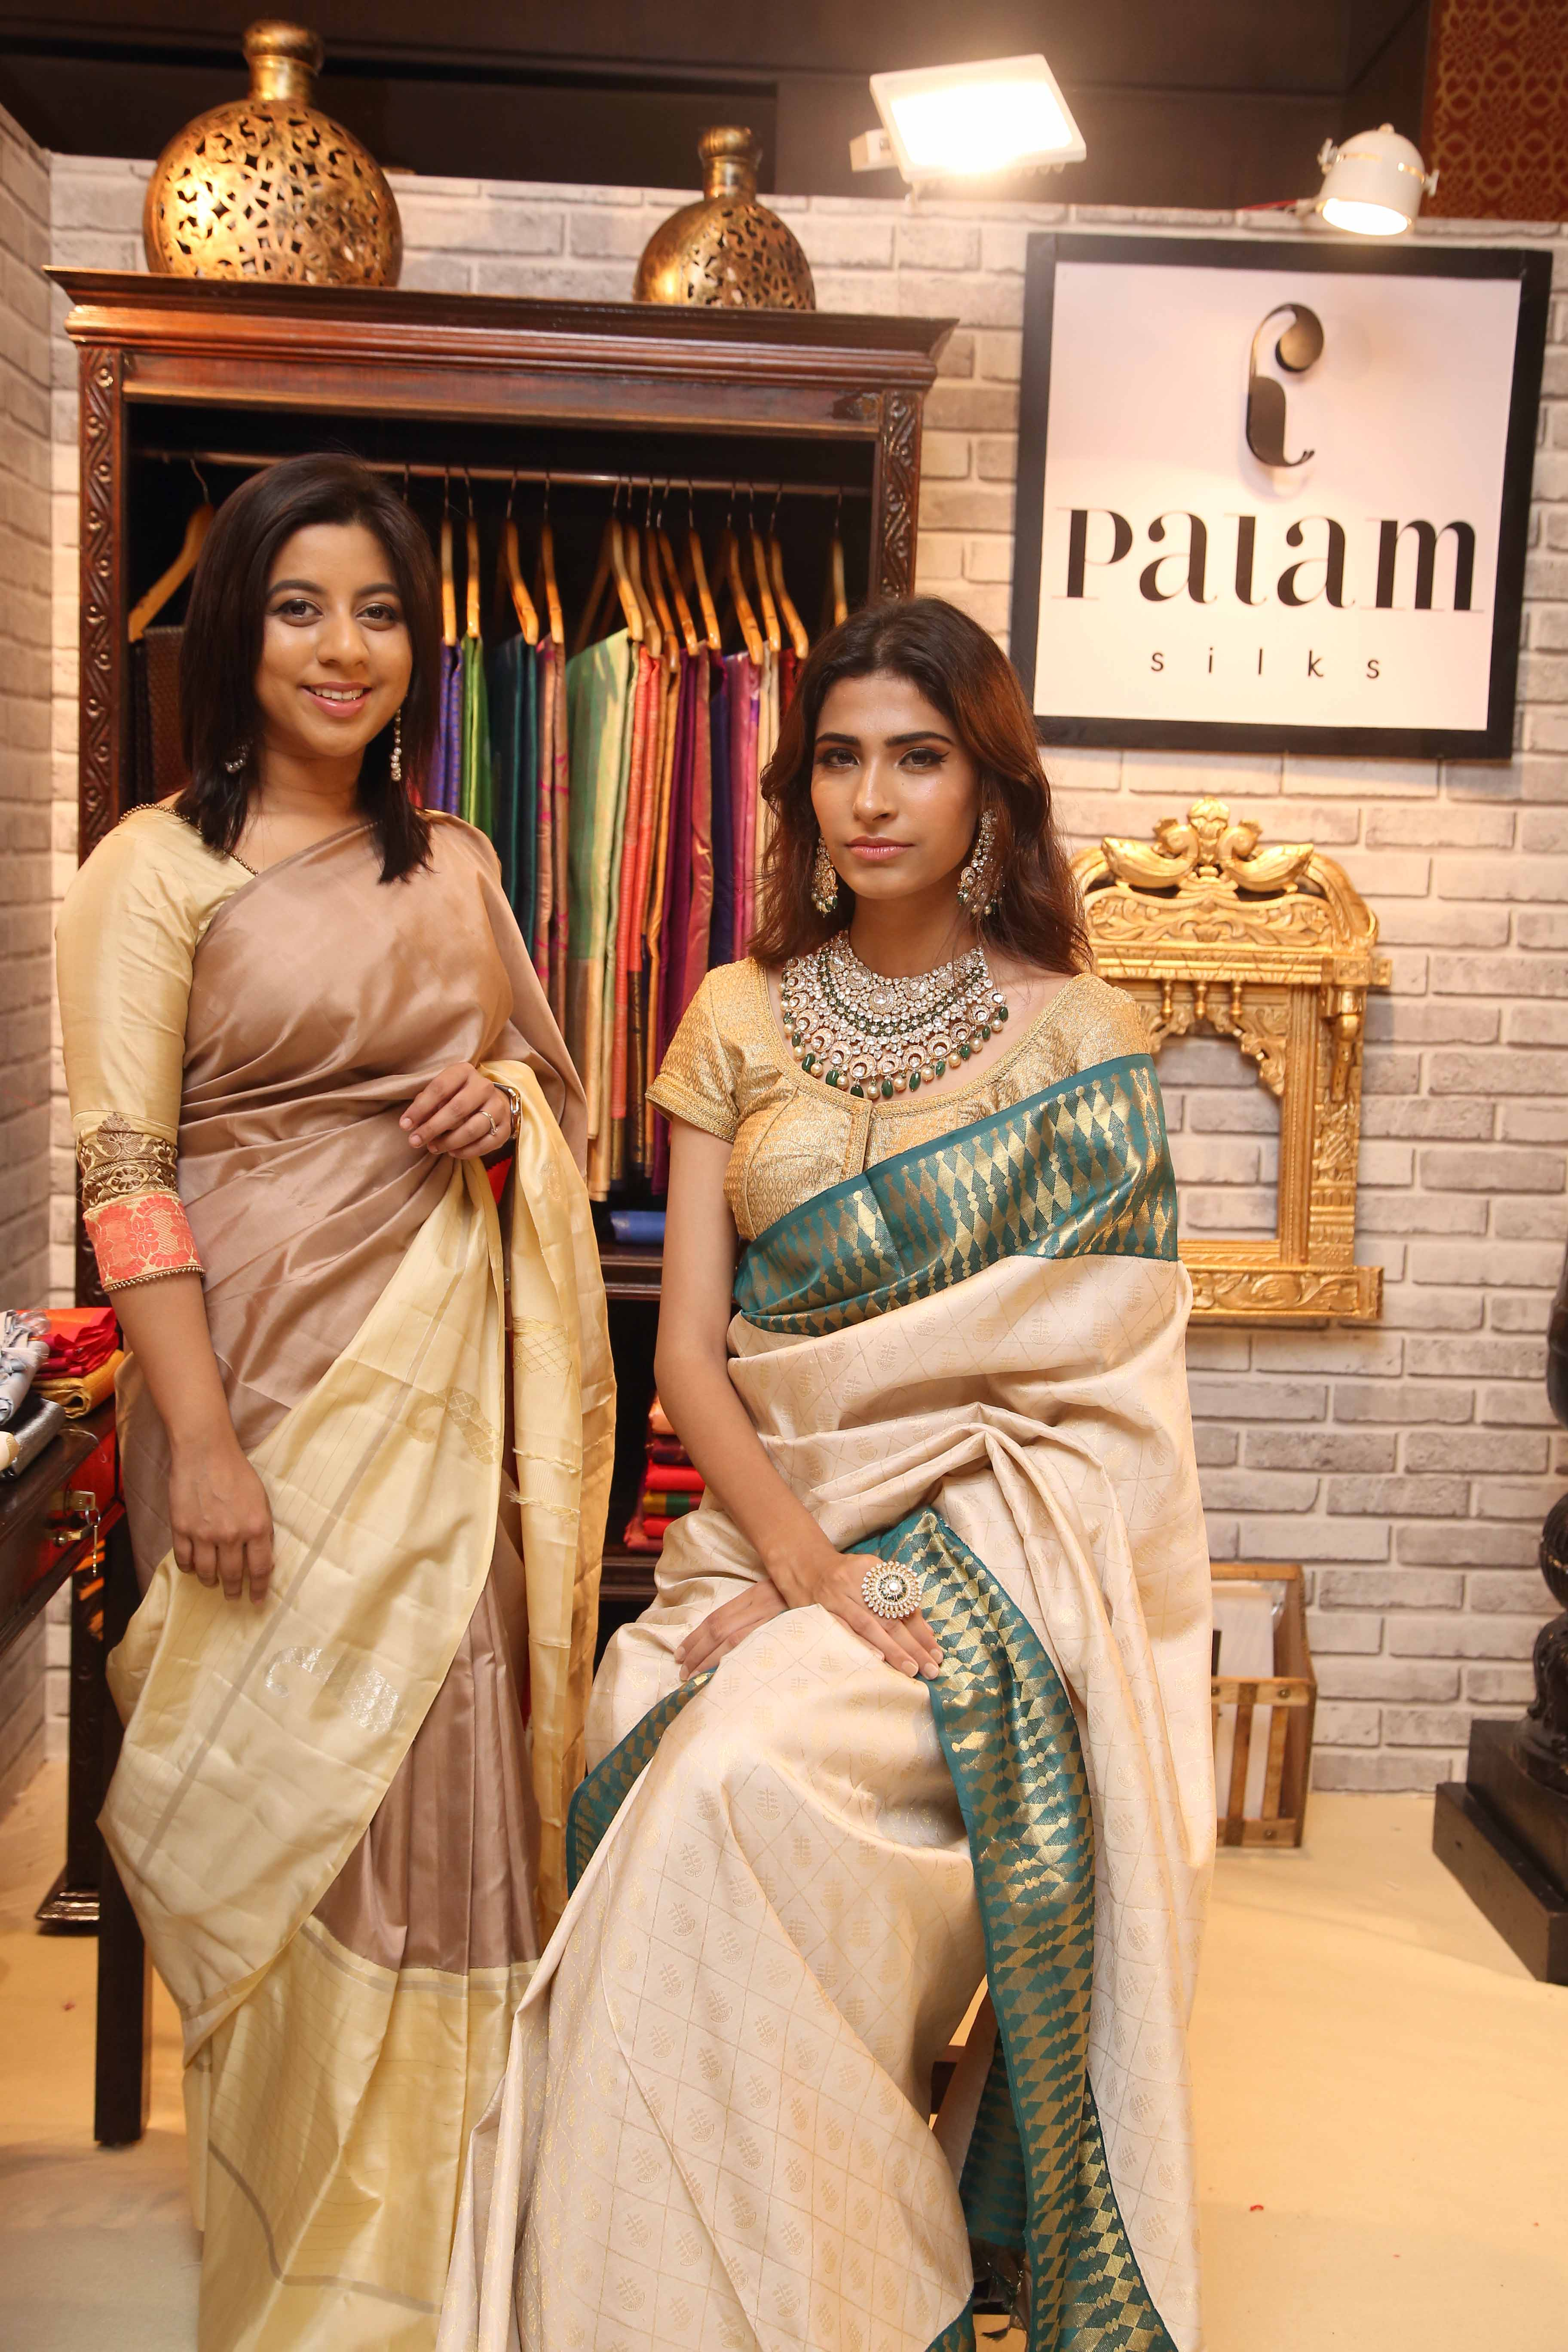 Palam silks folklore saree collections by Sunita Yogesh